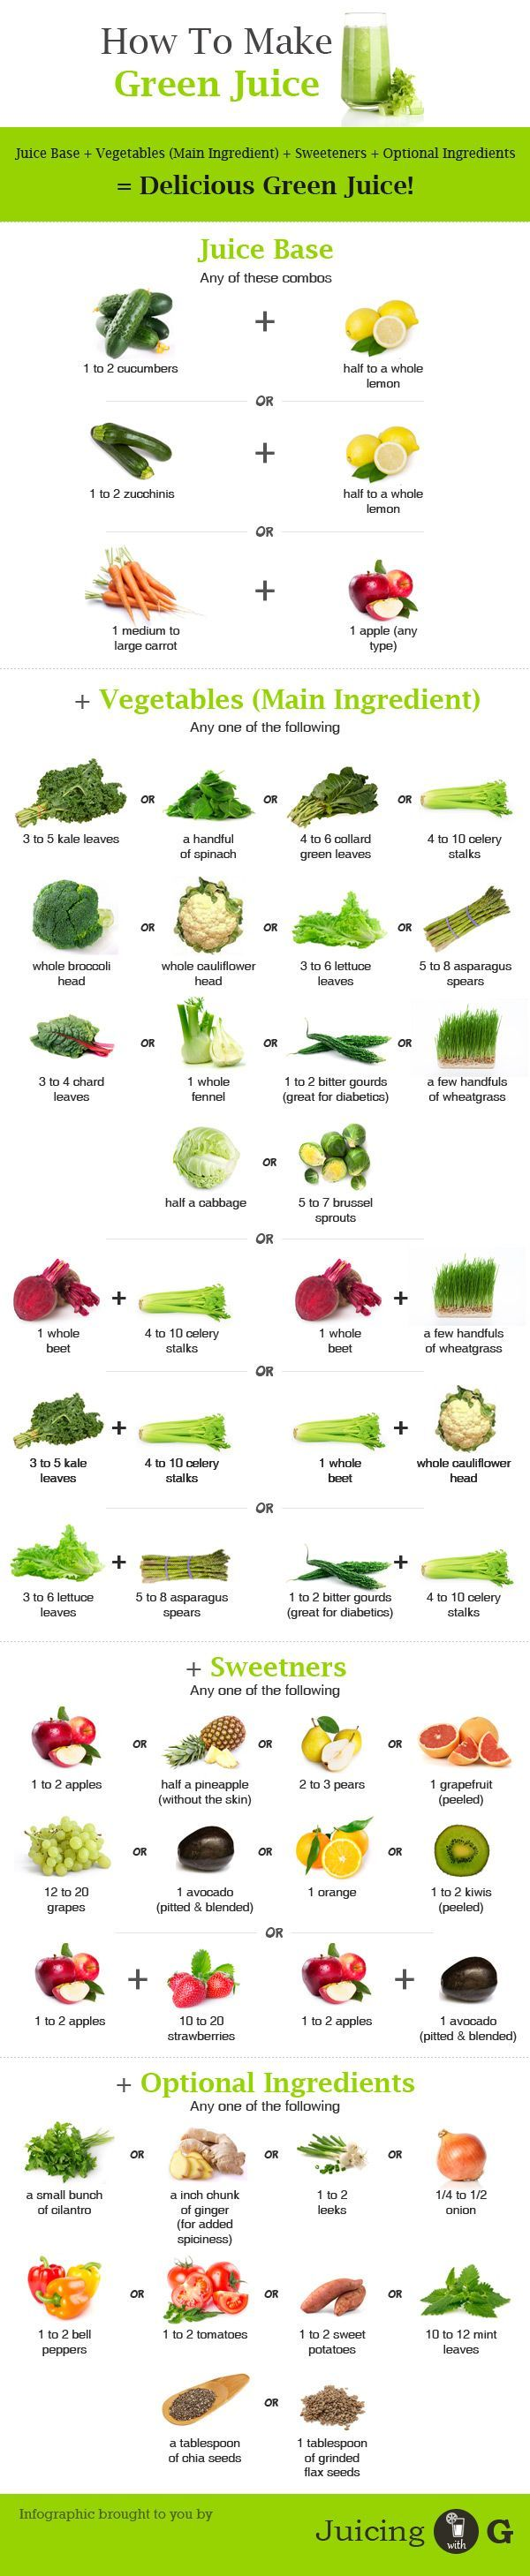 How to make green juice - a guide in making your very own delicious green juice. Try it out, the possibilities are endless.